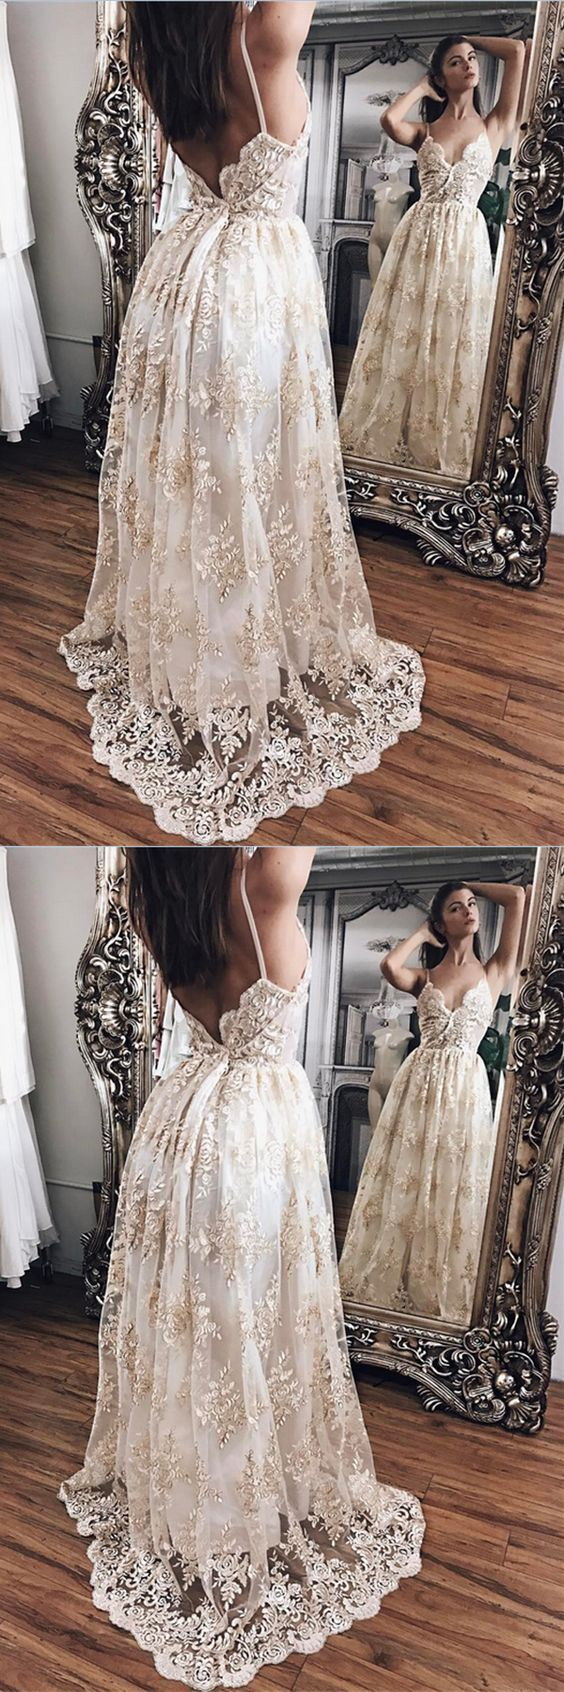 Champagne lace with white lining prom dressesprincess prom dresses